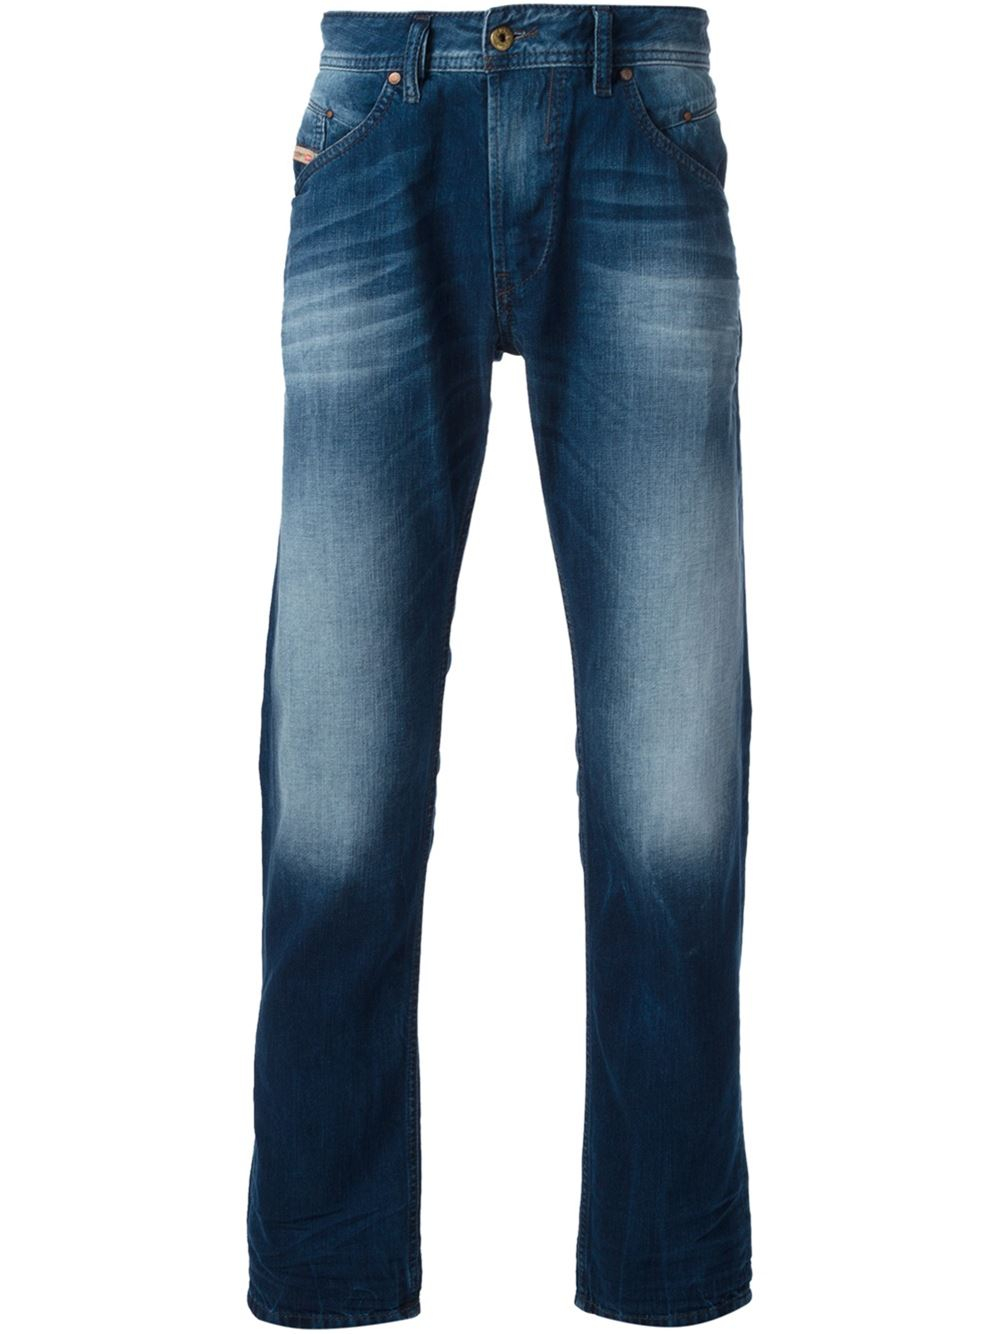 diesel 39 belther 39 tapered jeans in blue for men lyst. Black Bedroom Furniture Sets. Home Design Ideas